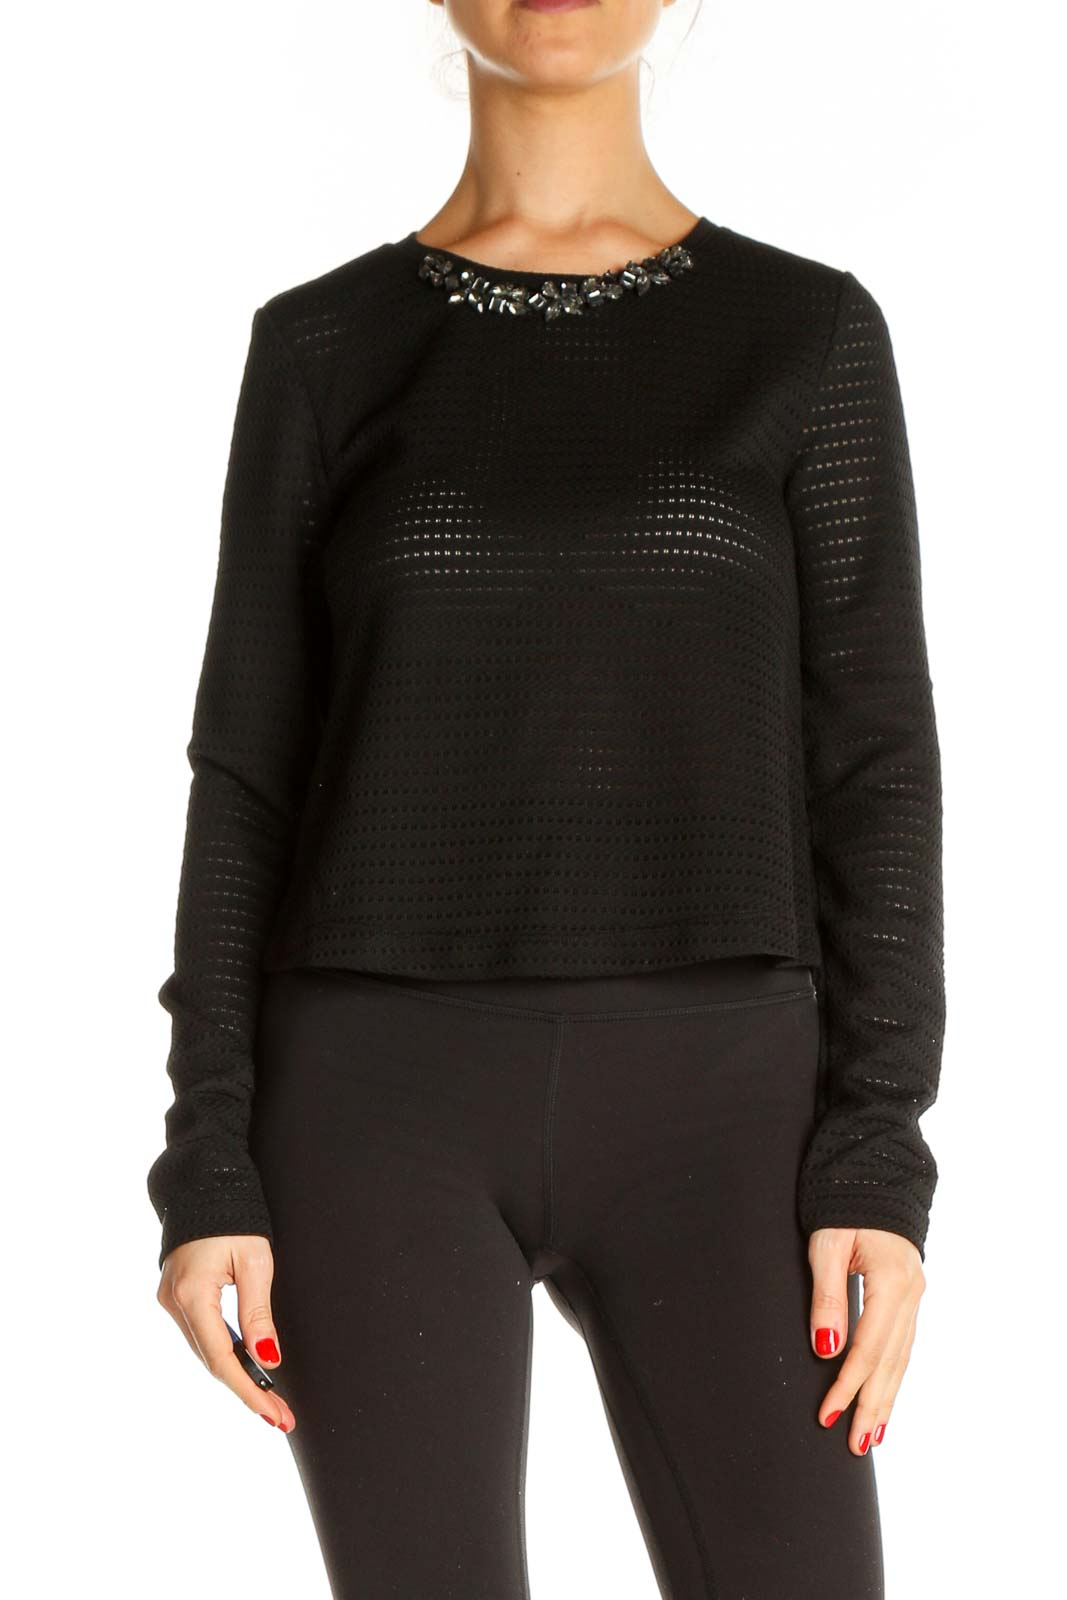 Black Textured Chic Sweater Front